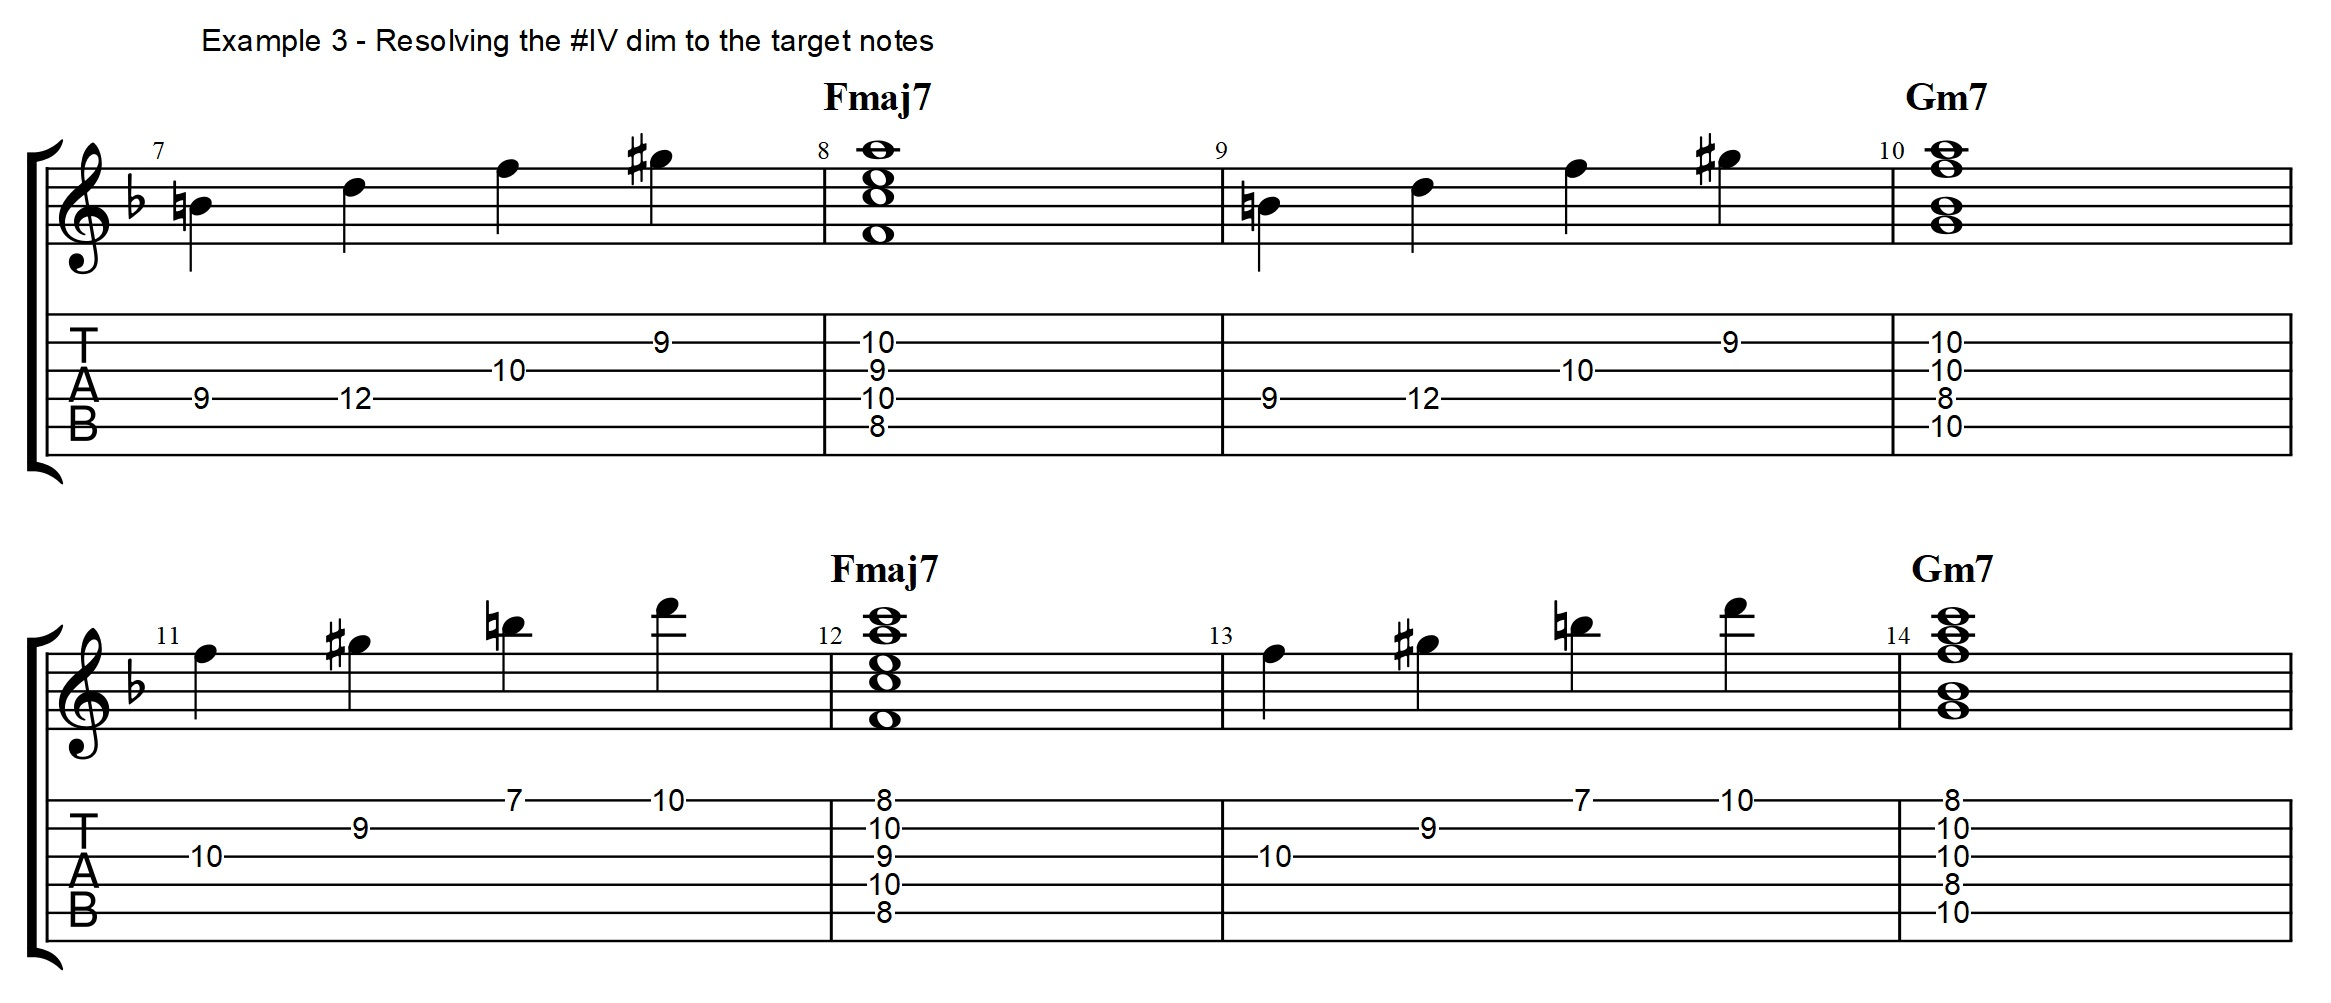 Secret to play over diminished chords jens larsen resolve the dim chord to an a or a c over the fmaj7 or gm7 in example 3 i have written out some simple exercises so you can hear how it sounds hexwebz Image collections